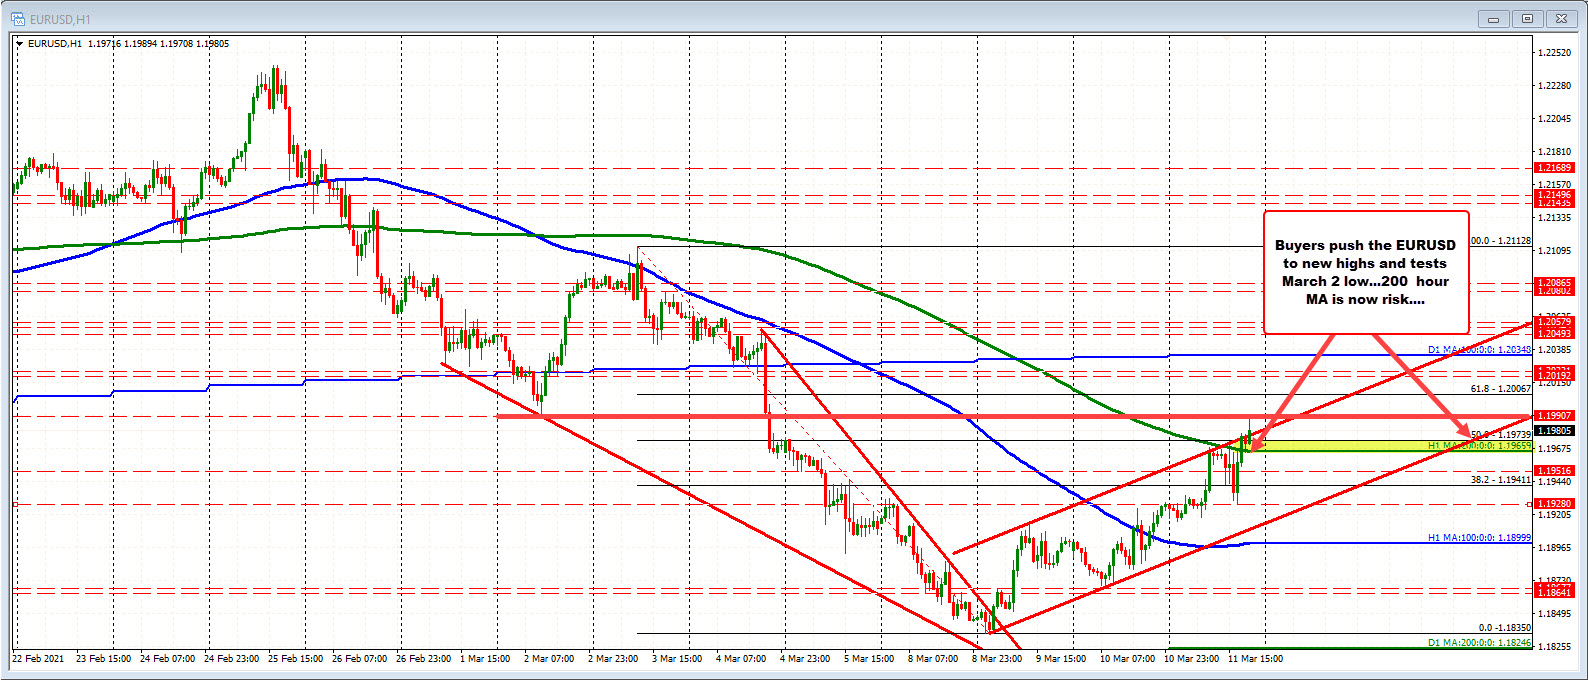 EURUSD extends to a new session high